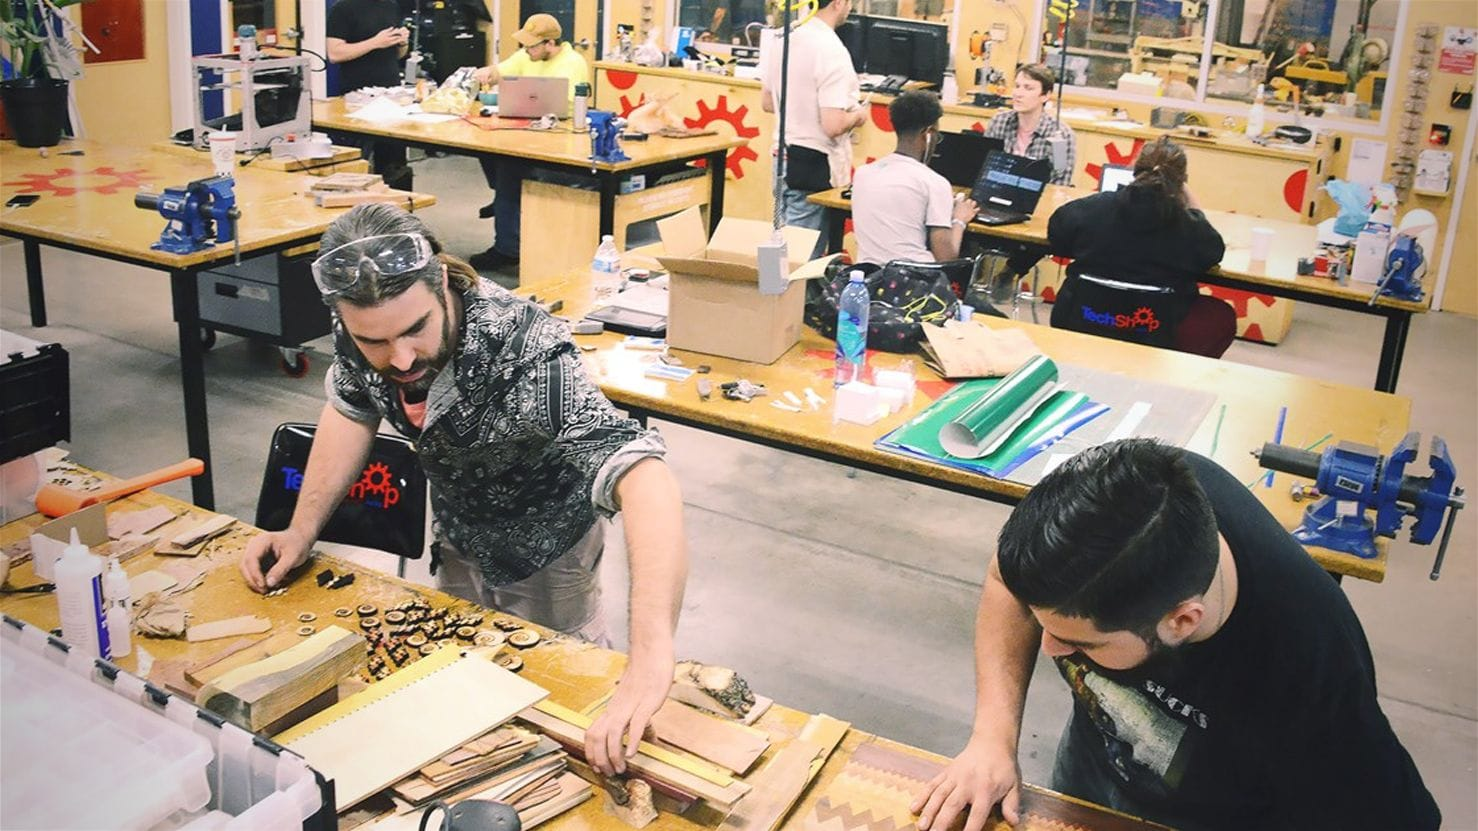 , Facing Bankruptcy, TechShop (Sadly) Closes All 14 Locations